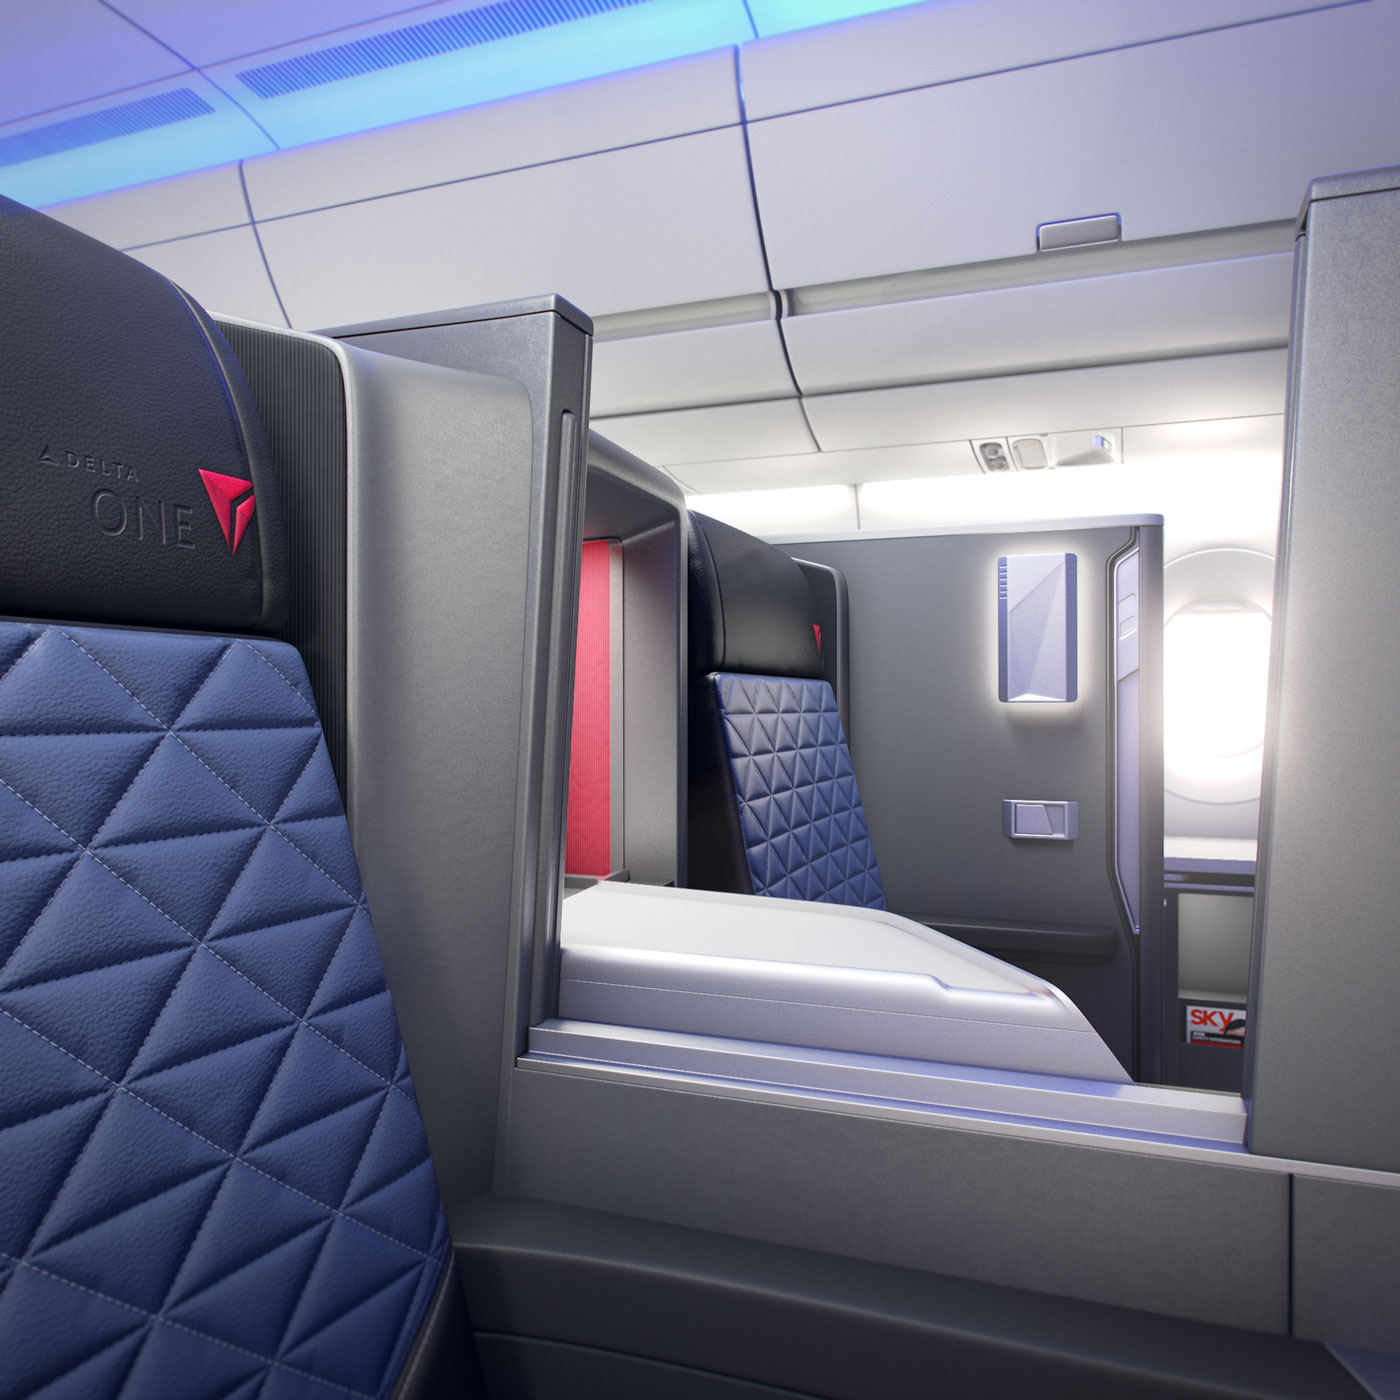 A closeup of the seats on Delta's business class A350.